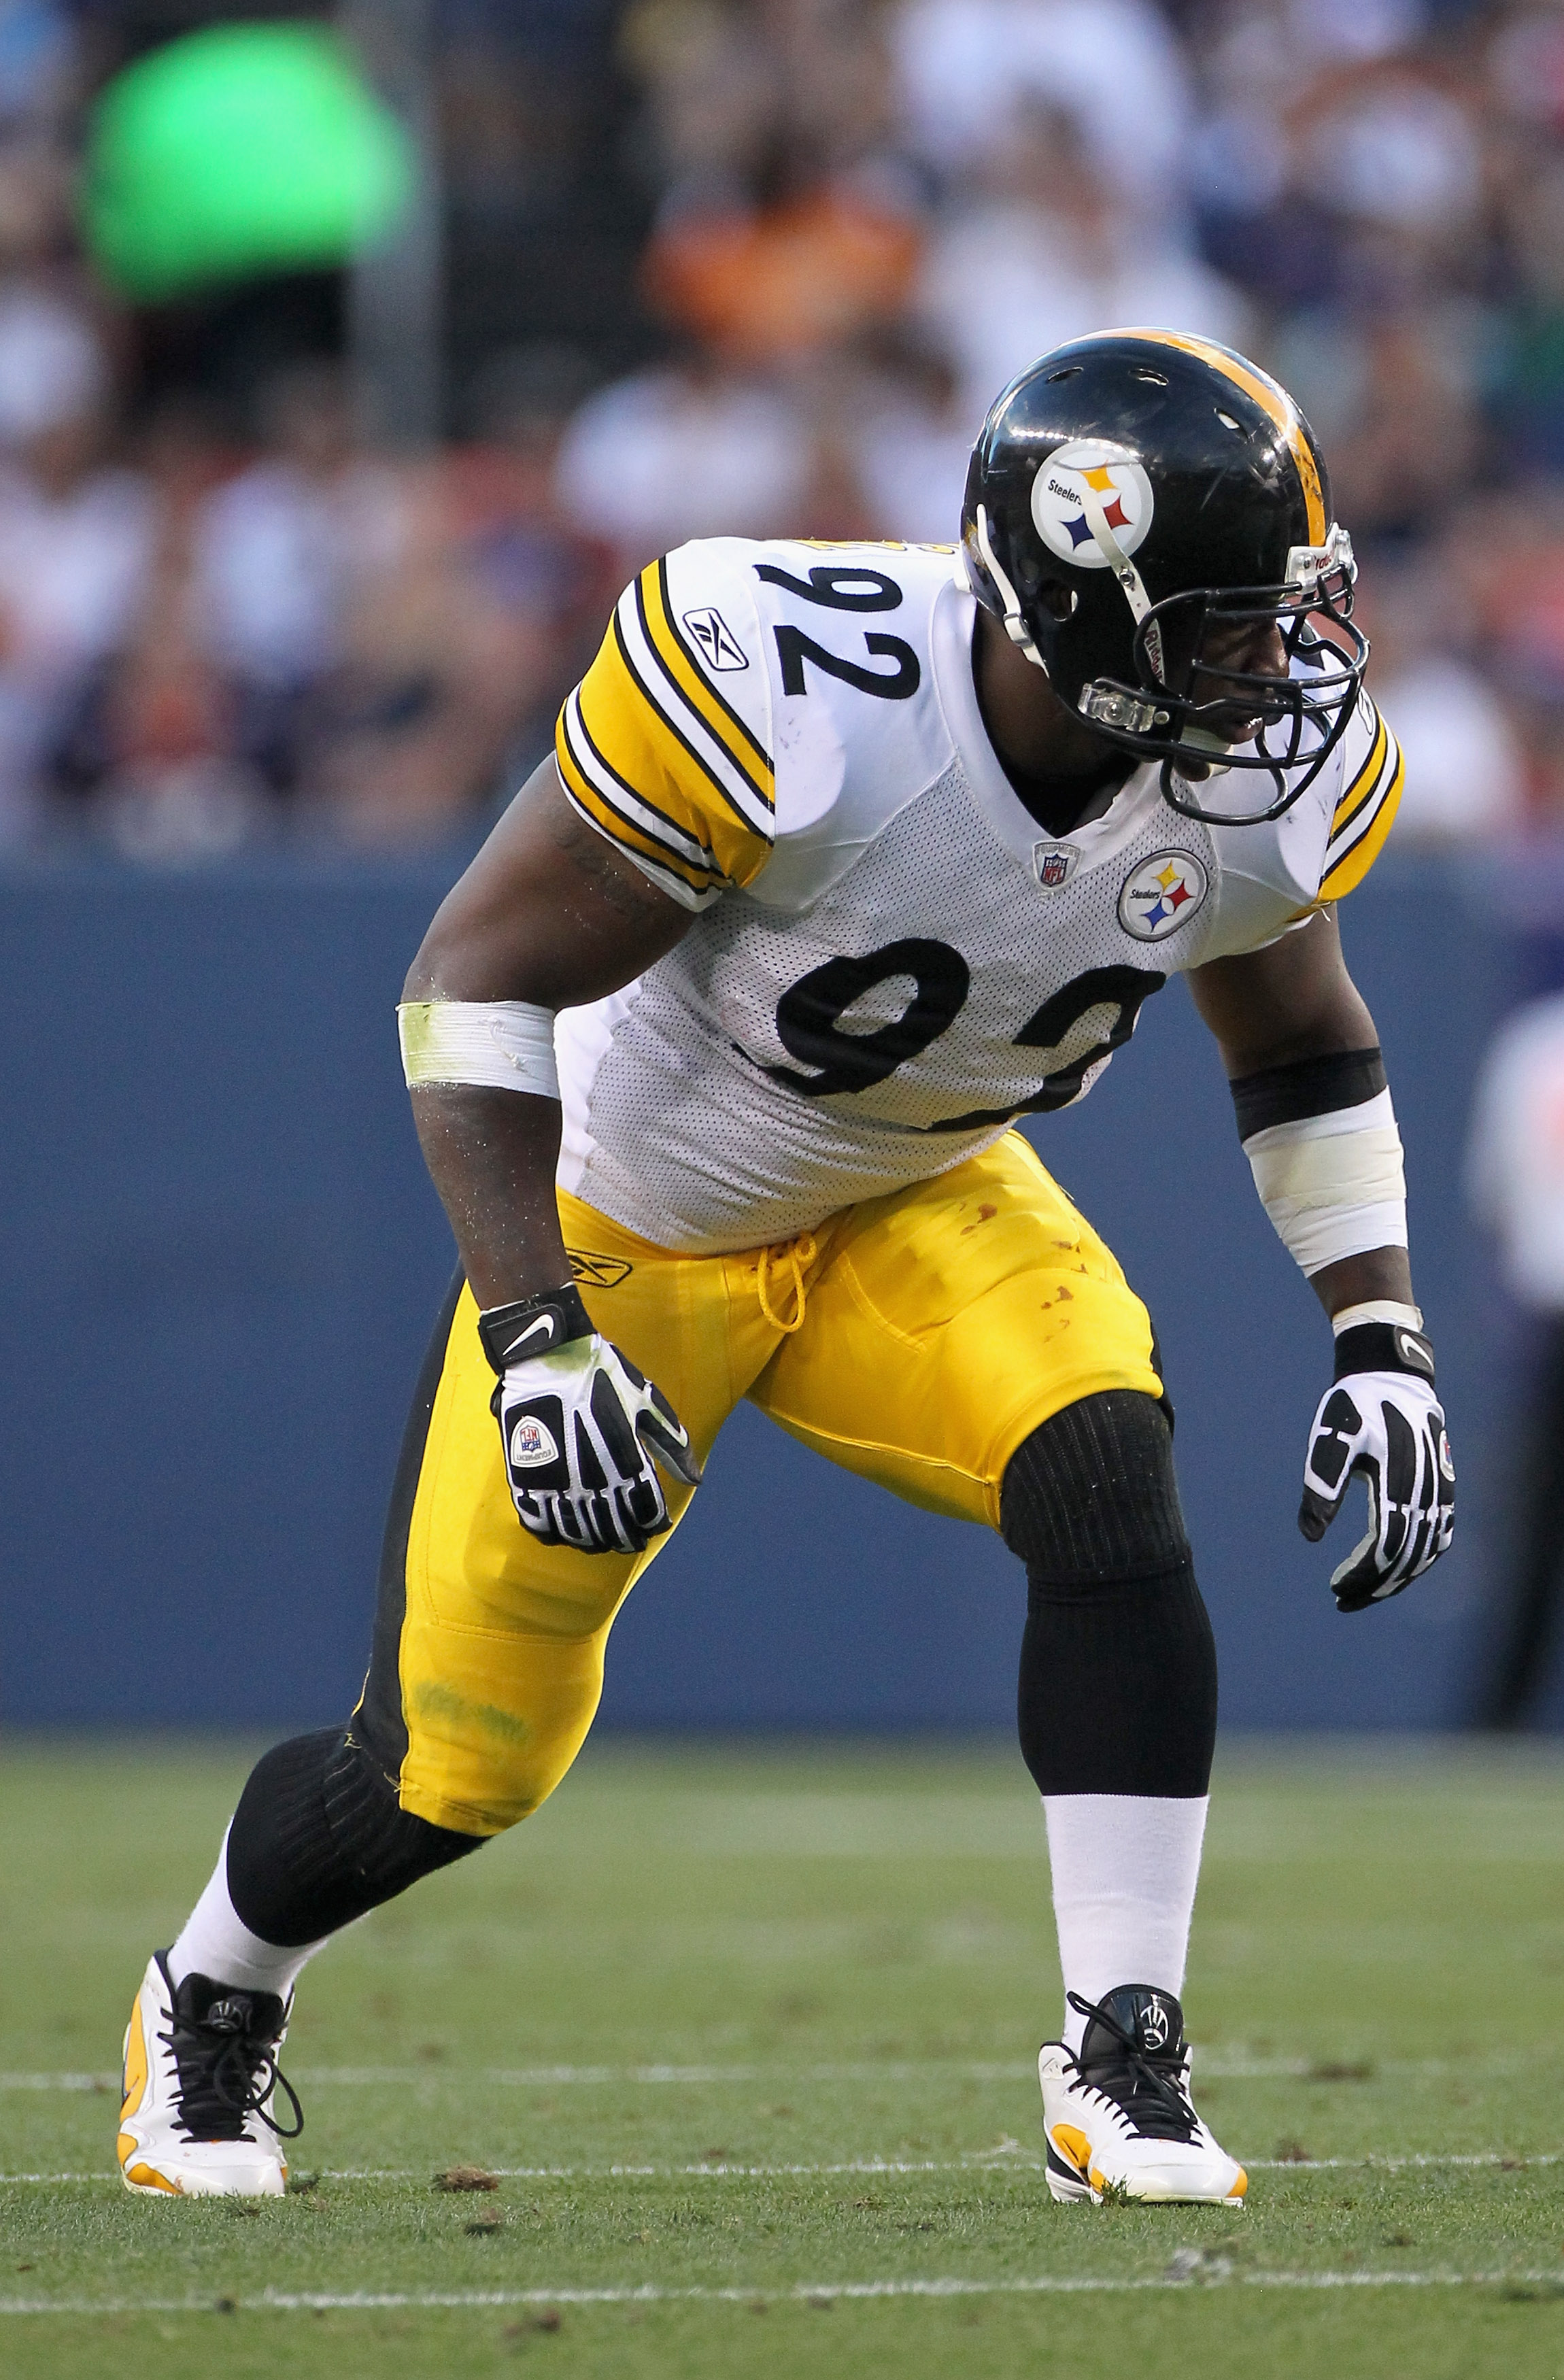 a592958715b DENVER - AUGUST 29  Linebacker James Harrison  92 of the Pittsburgh Steelers  defends against